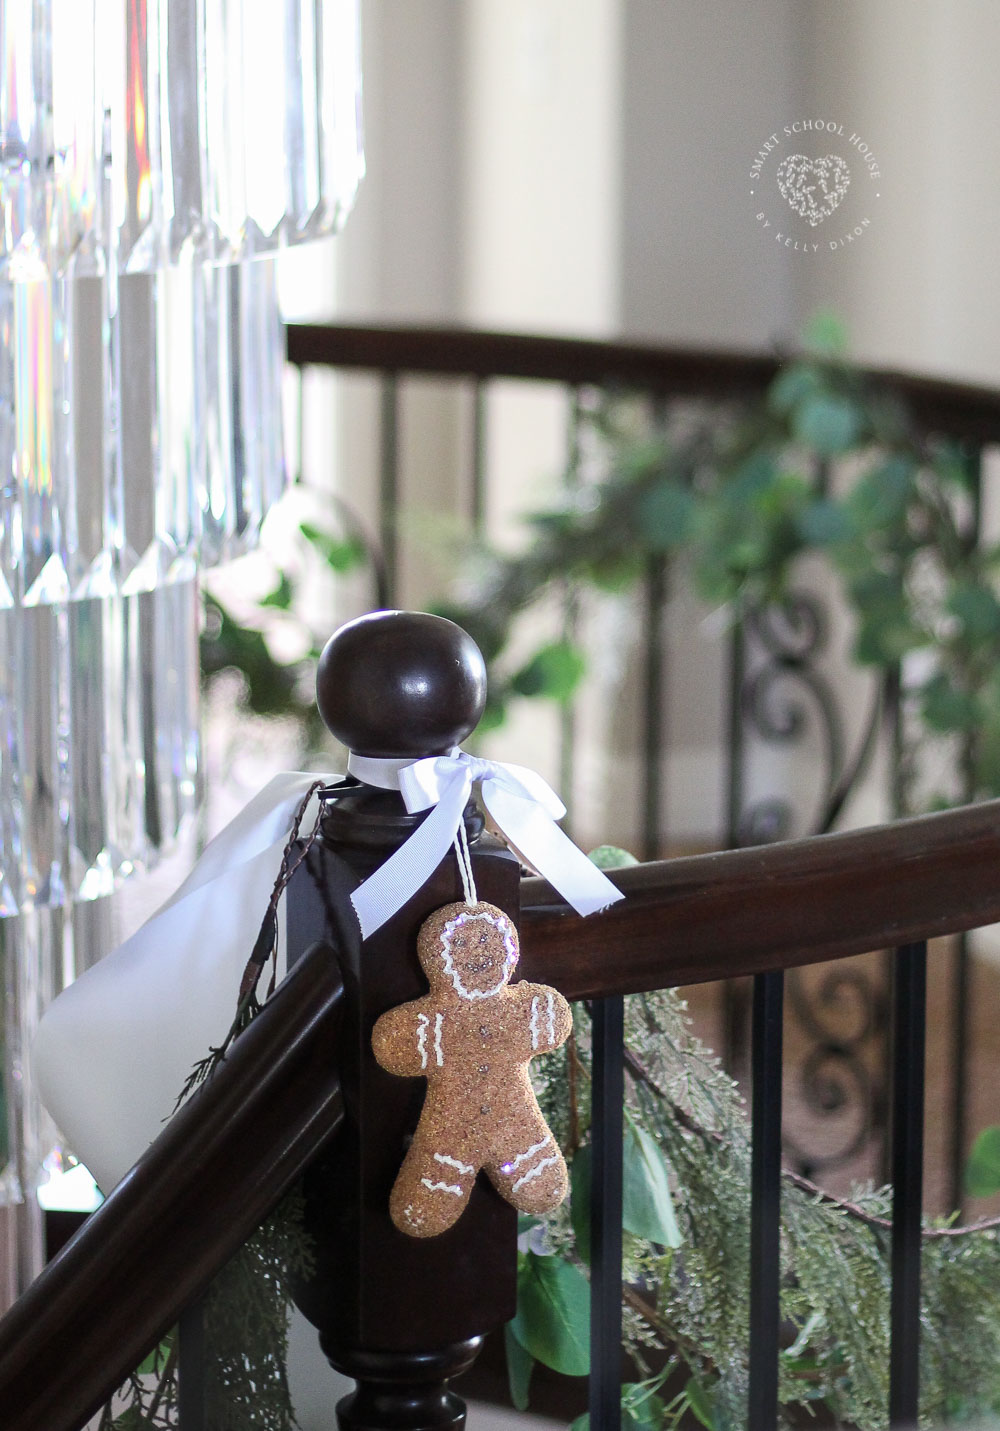 Eucalyptus Garland for Christmas tied with white ribbons and a gingerbread man. Simple and beautiful garland idea for Christmas. #ChristmasGarland #EucalyptusGarland